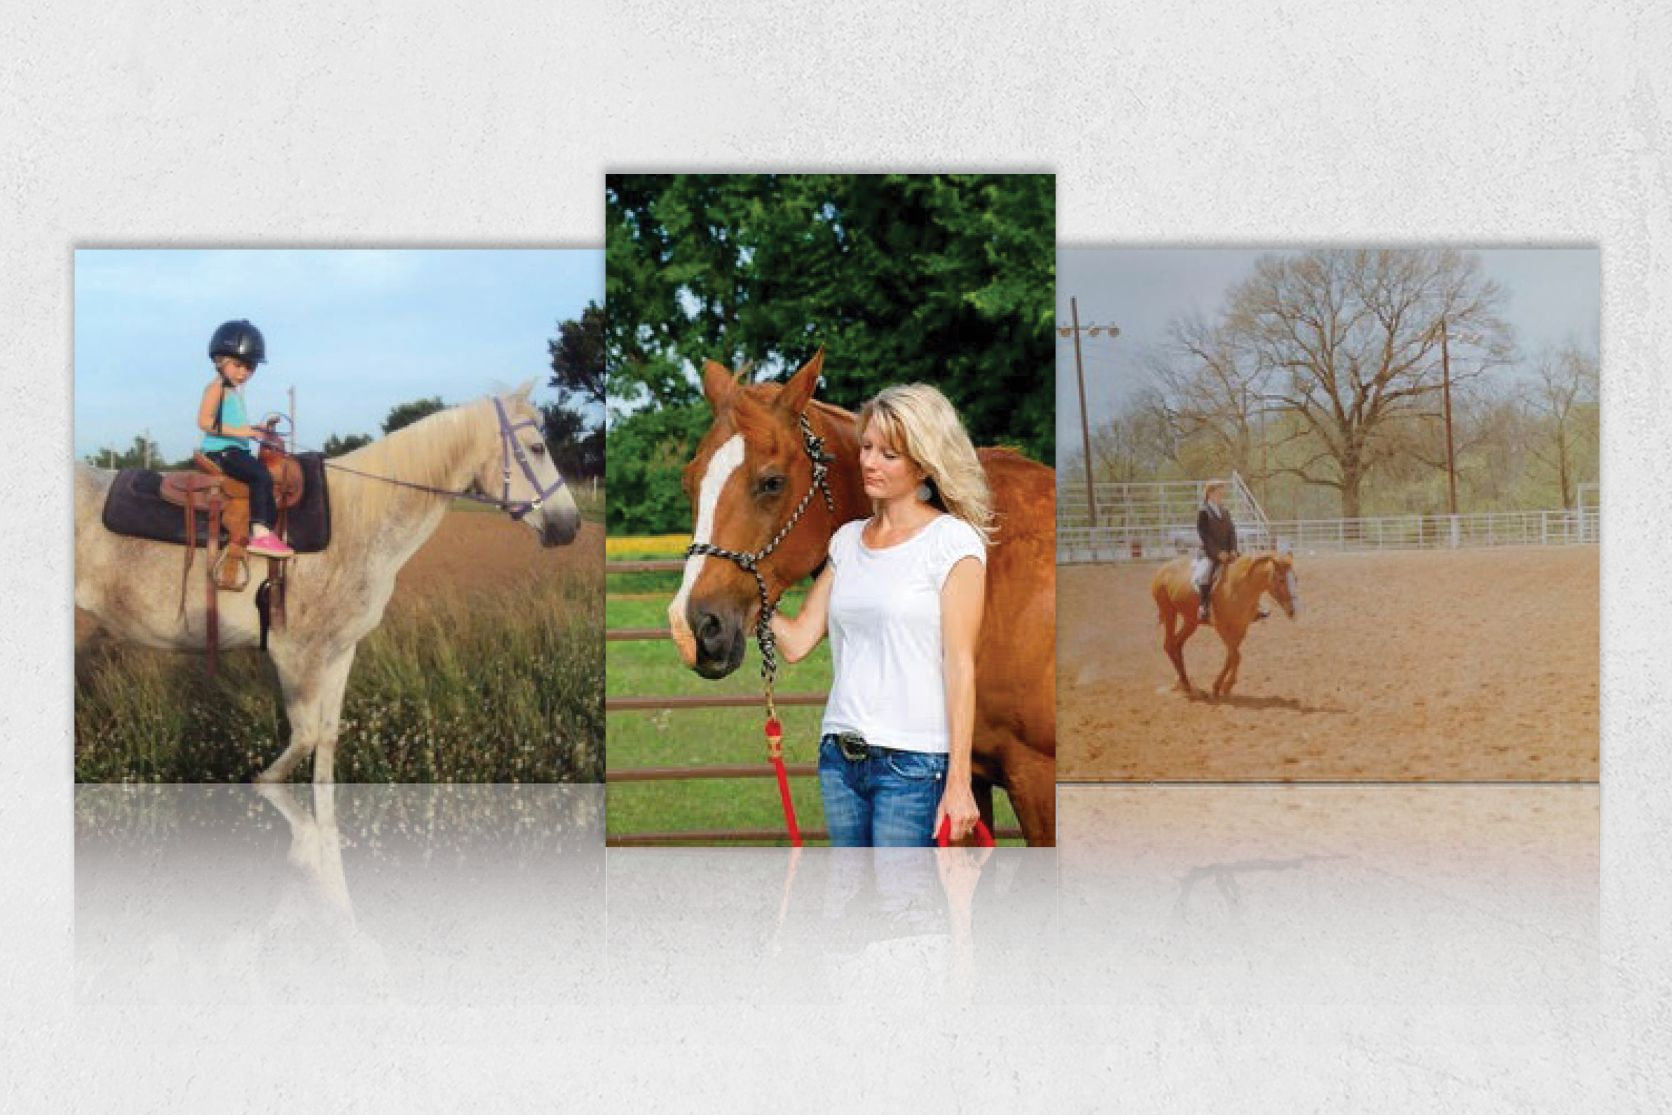 Your Horse Farm Your Horse Farm Resources For Every Horse Farm Equestrian Lifestyle Blog Rammfence Horses Yourhorsefarm Horses Horse Farms Equestrian